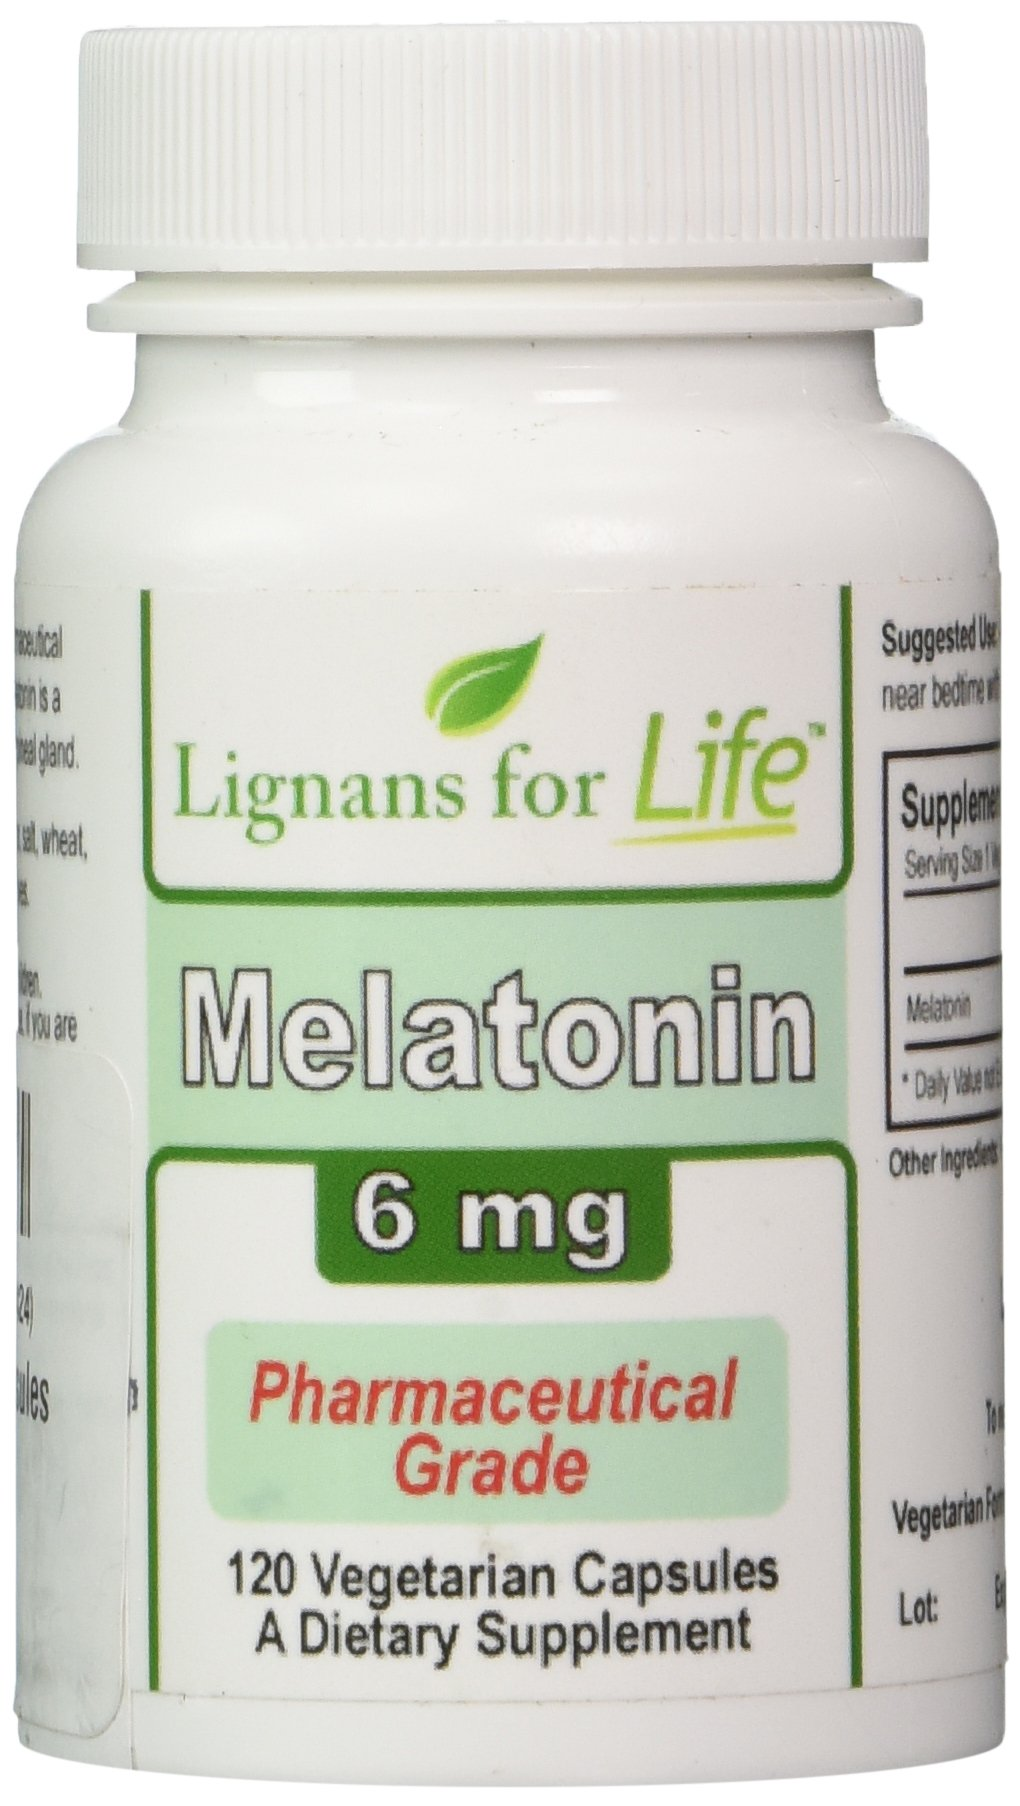 Melatonin 6 mg 120 Capsules